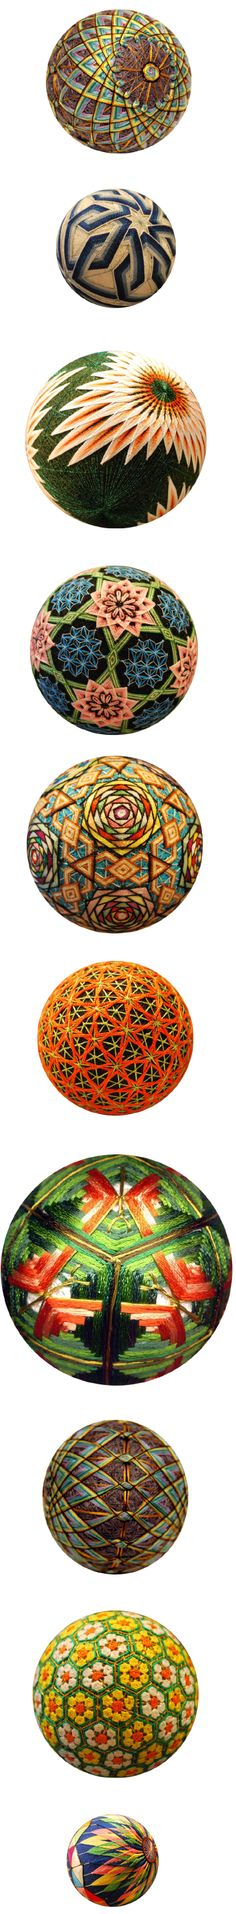 NanaAkua's grandmother of 88 in 2009 created these unbelievable Japanese traditional gifts called Temari . They are of the highest quality that you may ever see and to be given one is of great friendship and faithfulness.  Temari. Meaning 'hand ball' in Japanese. - See more at: http://www.curiouspeeps.net/feature/nanaakua#sthash.zXqe5vAo.dpuf